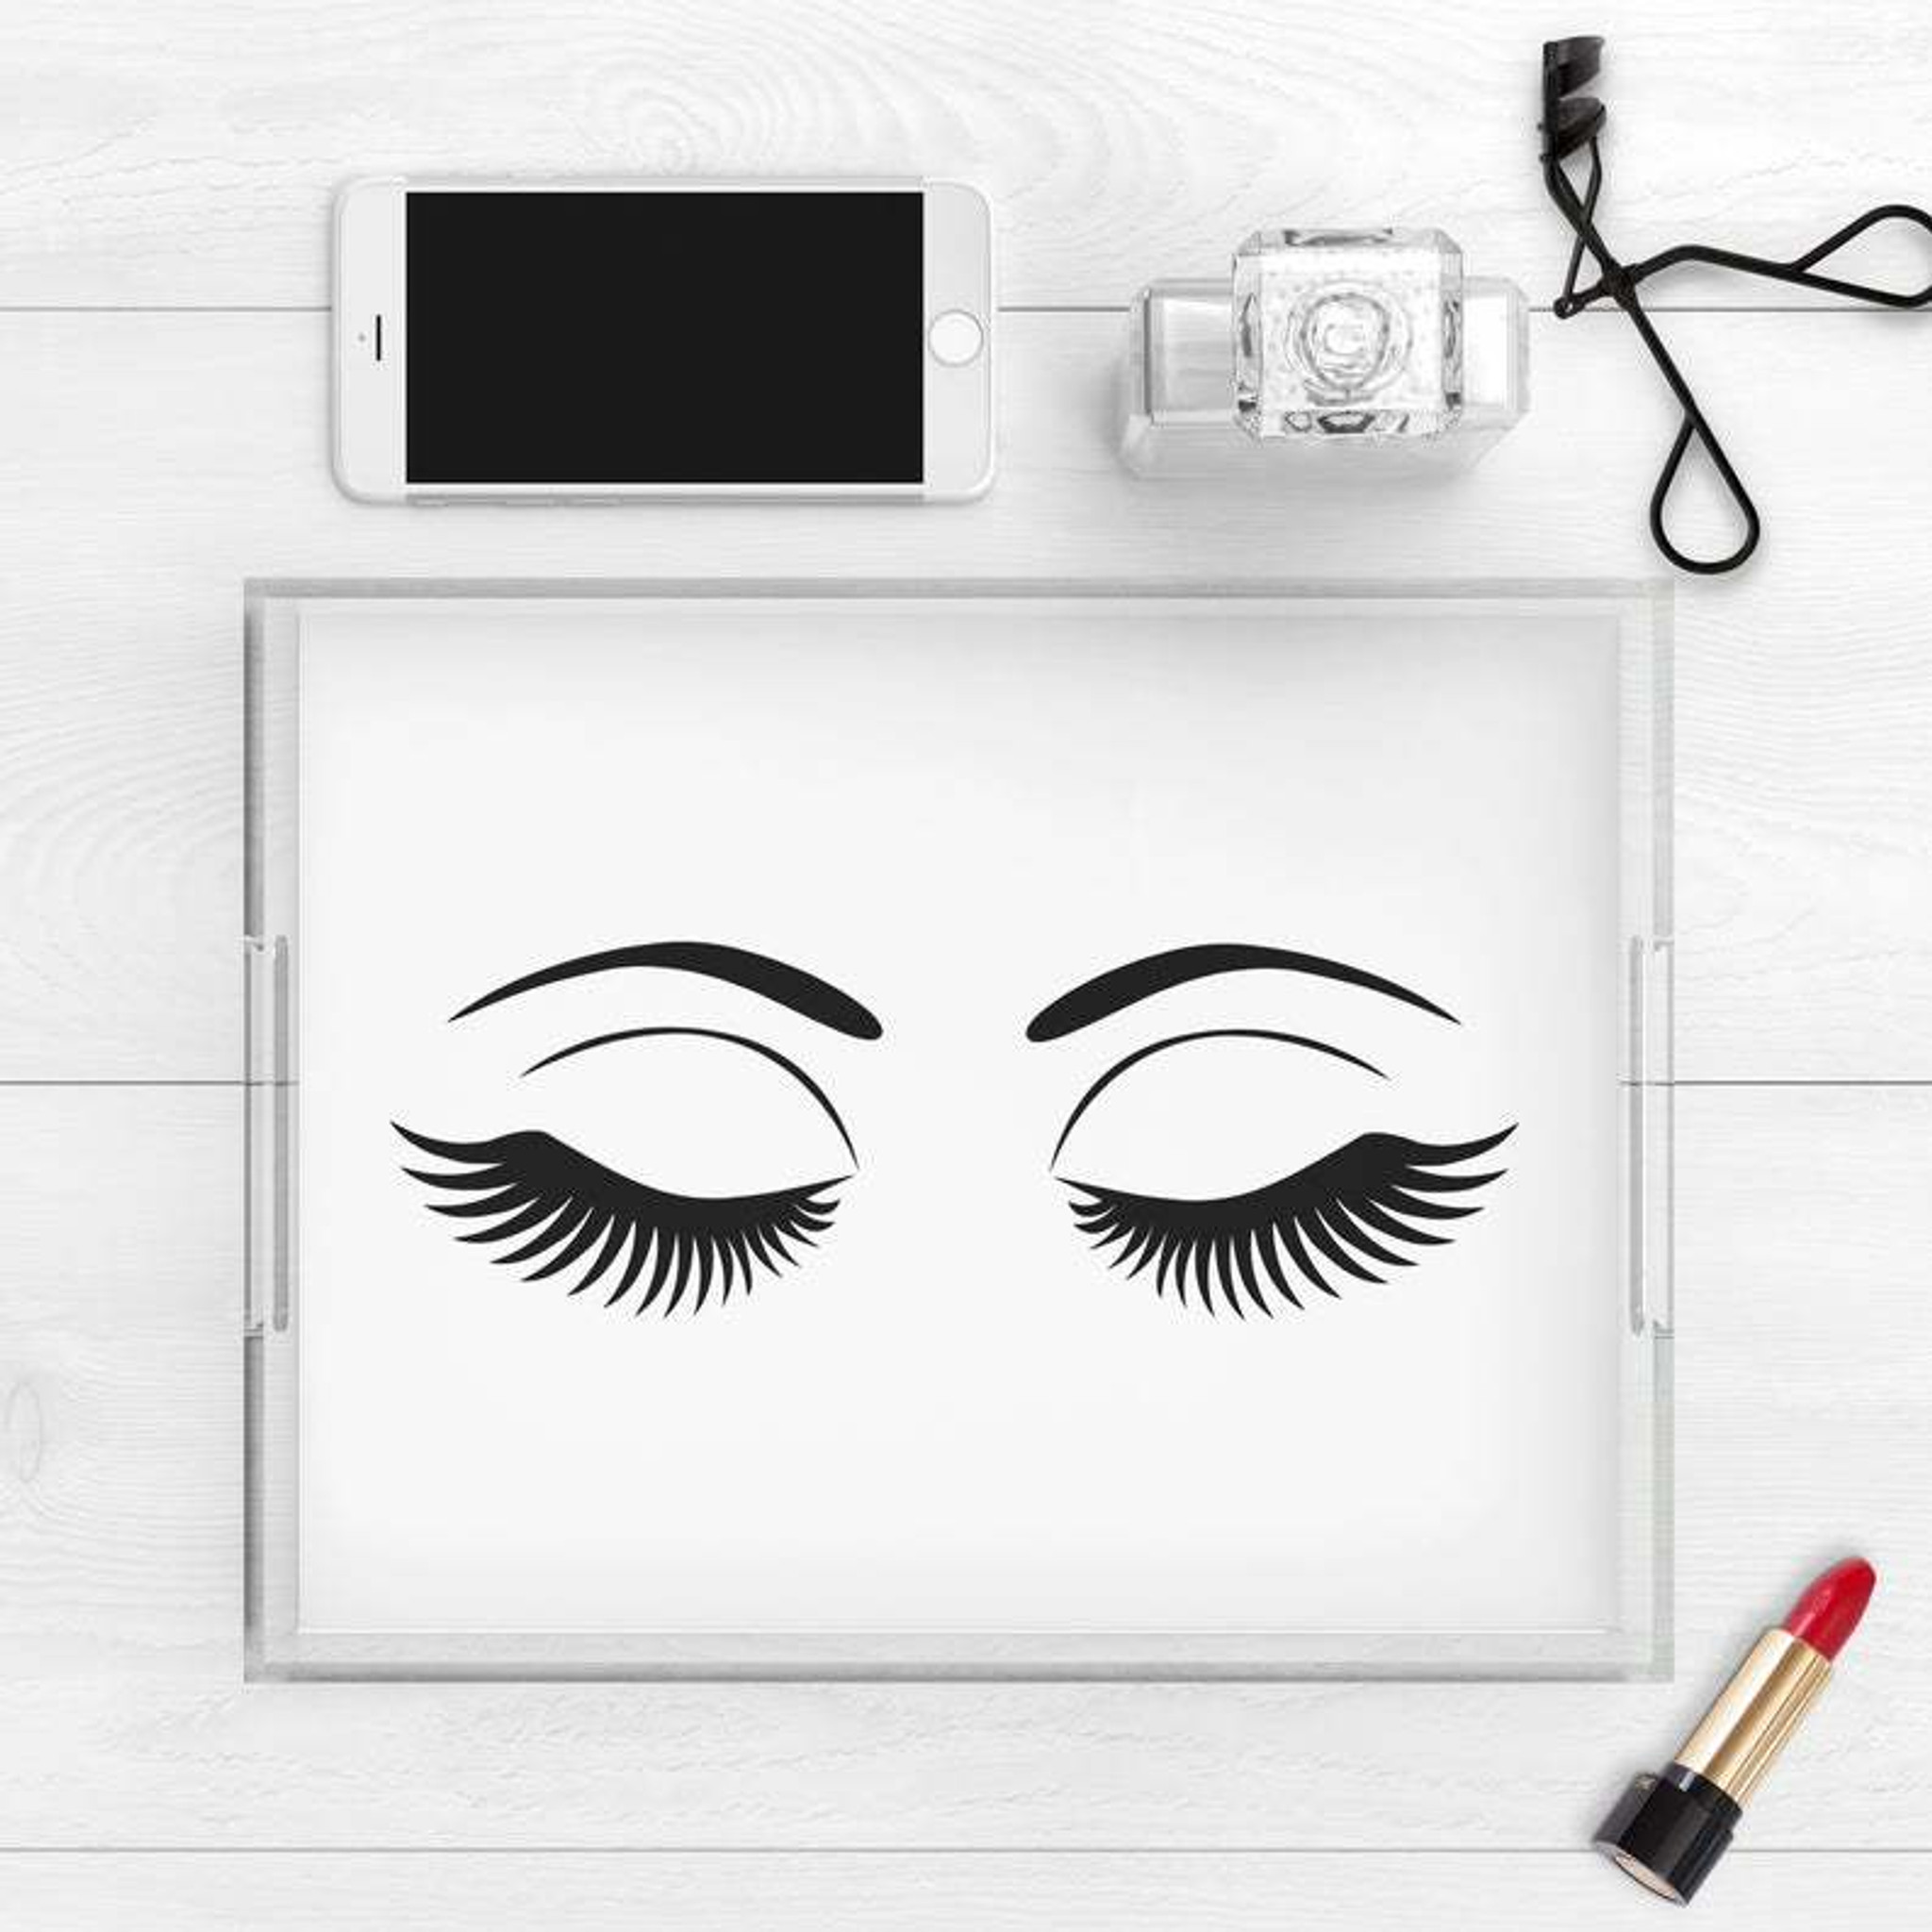 clear acrylic make up tray with eyelash print black and white